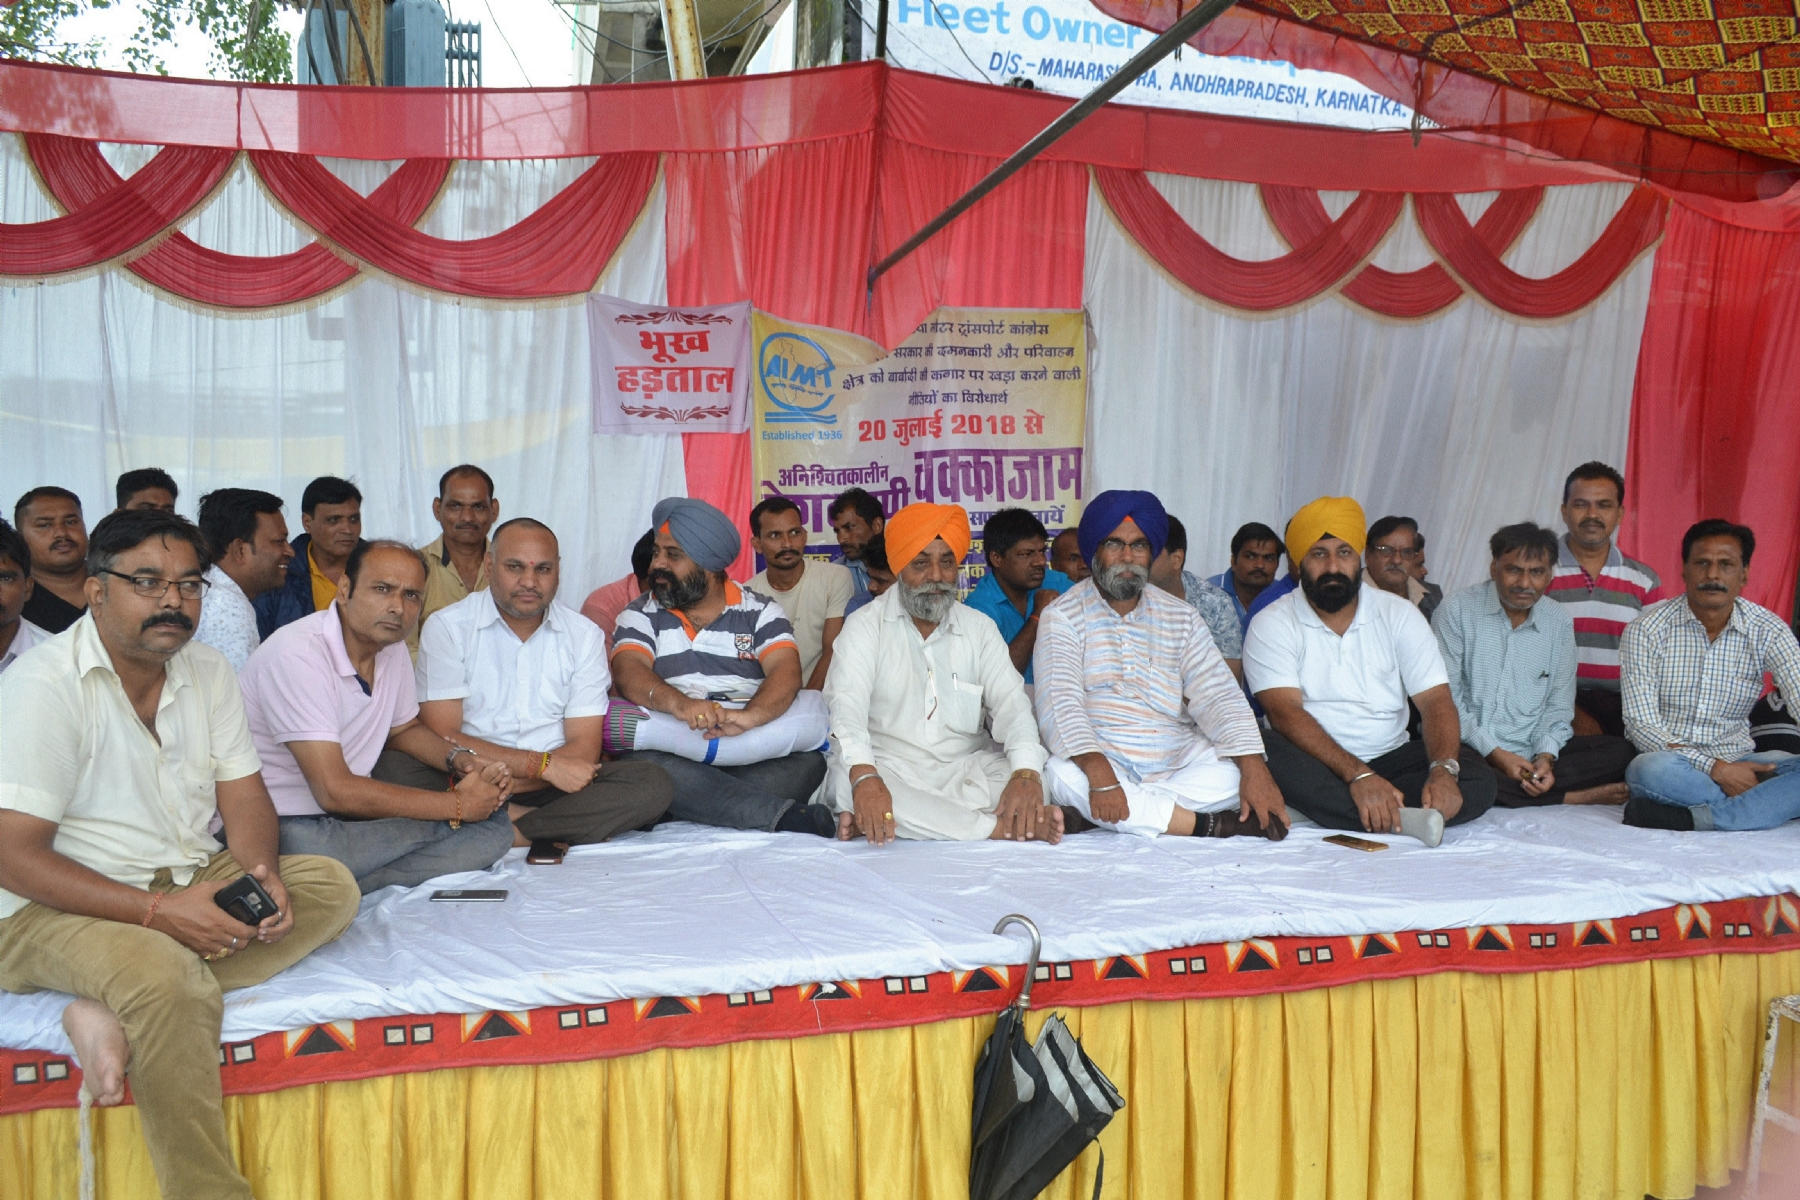 Truck Owners Assn stages symbolic hunger strike on 7th day